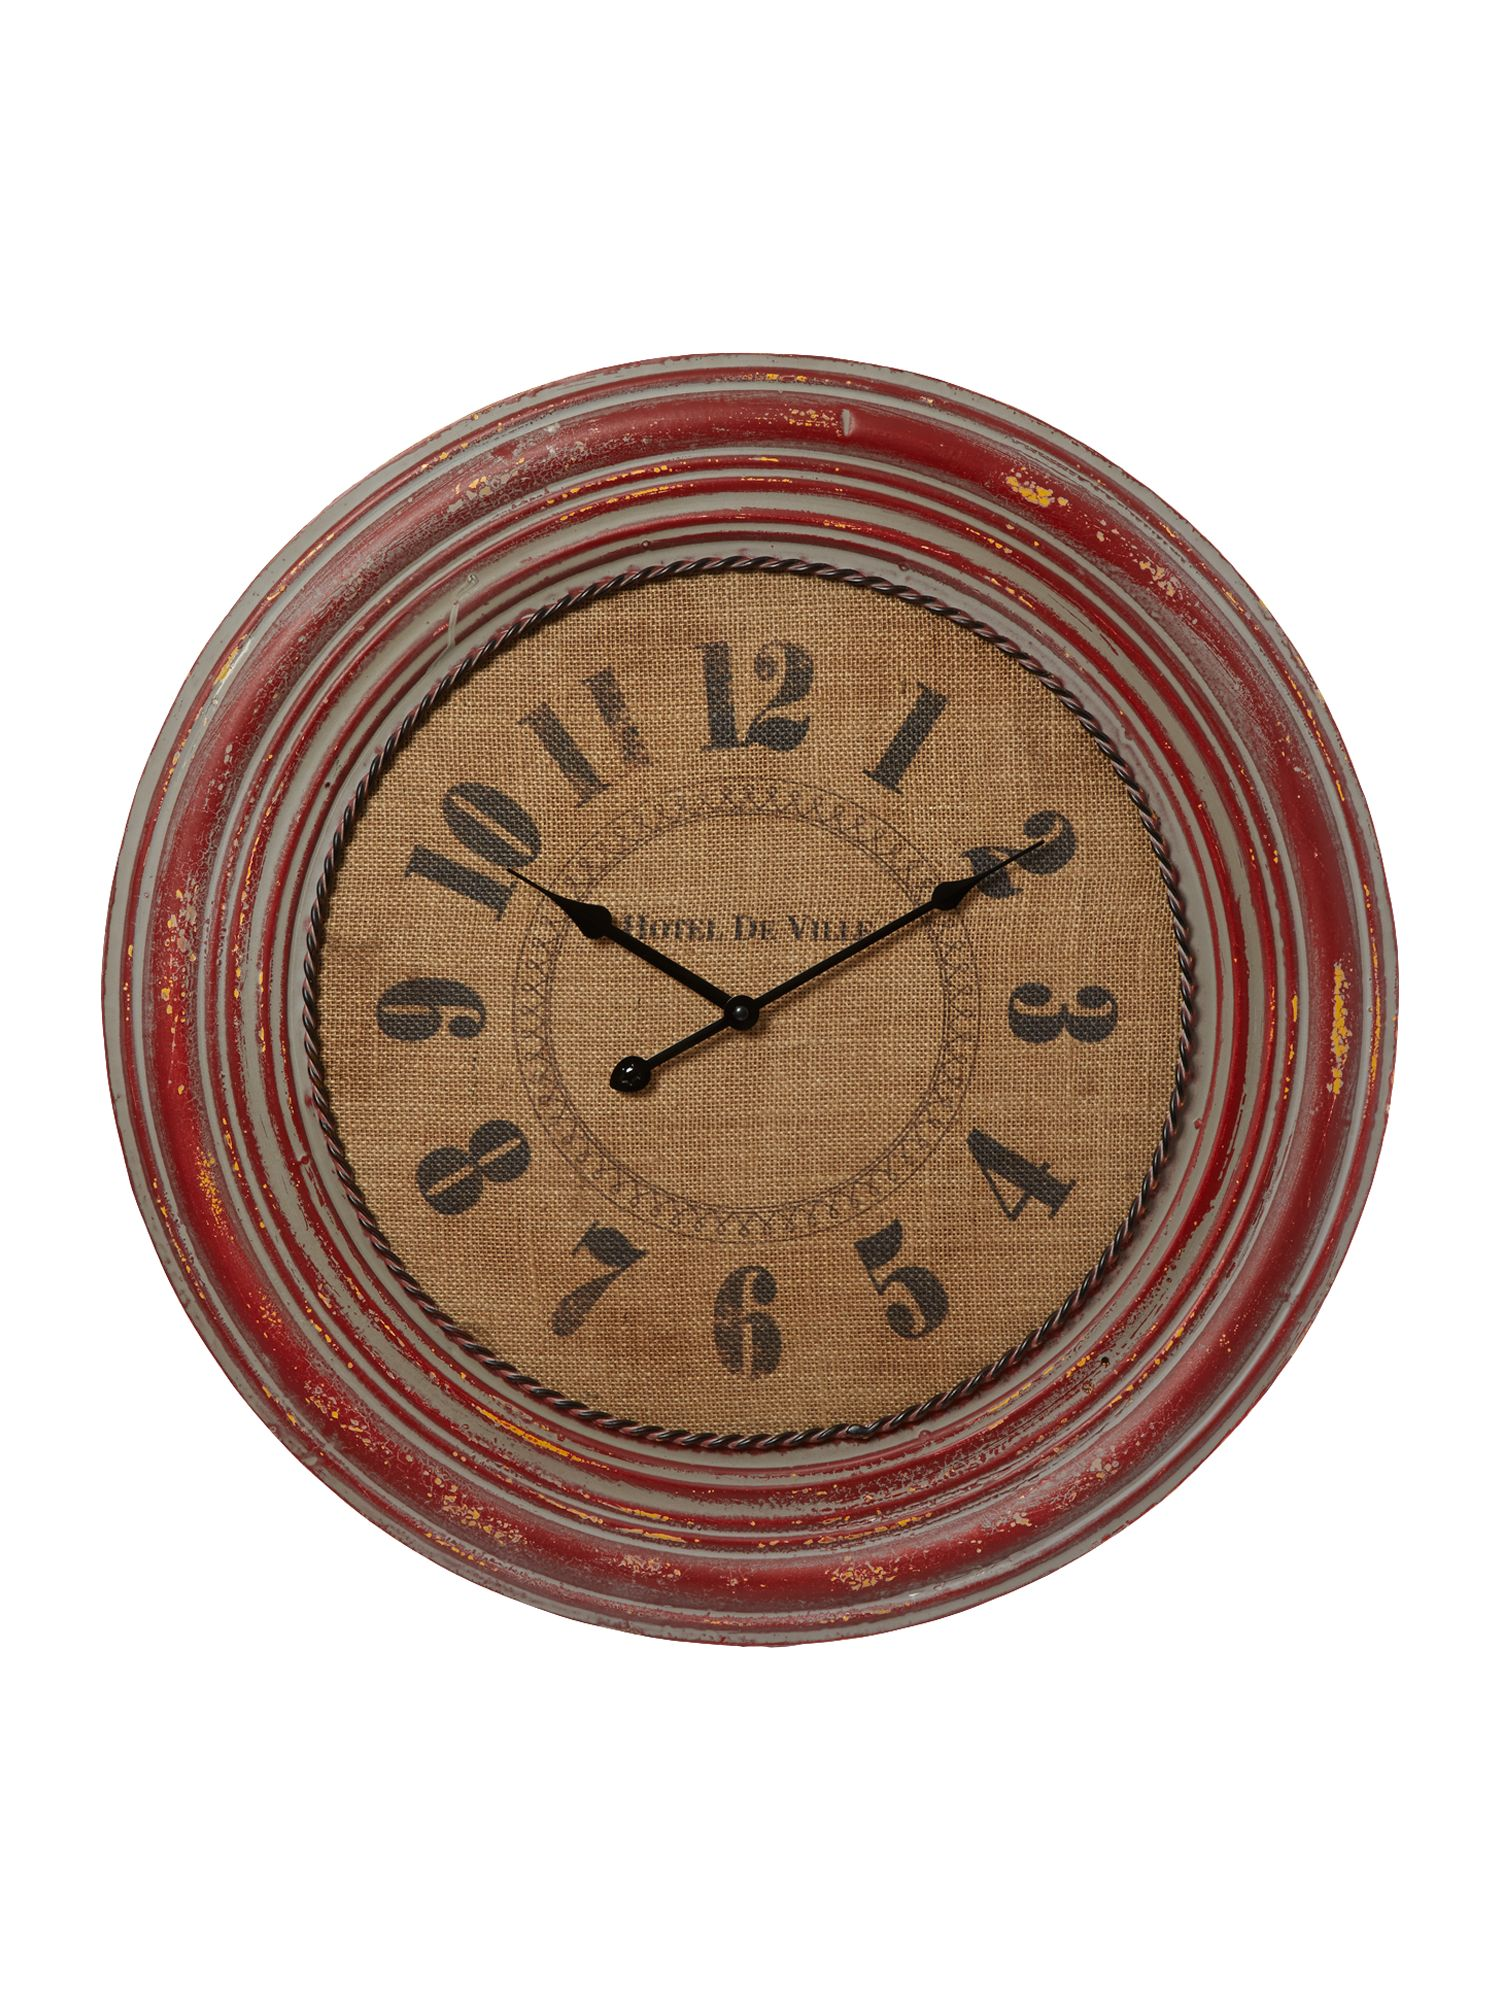 Red henley wall clock